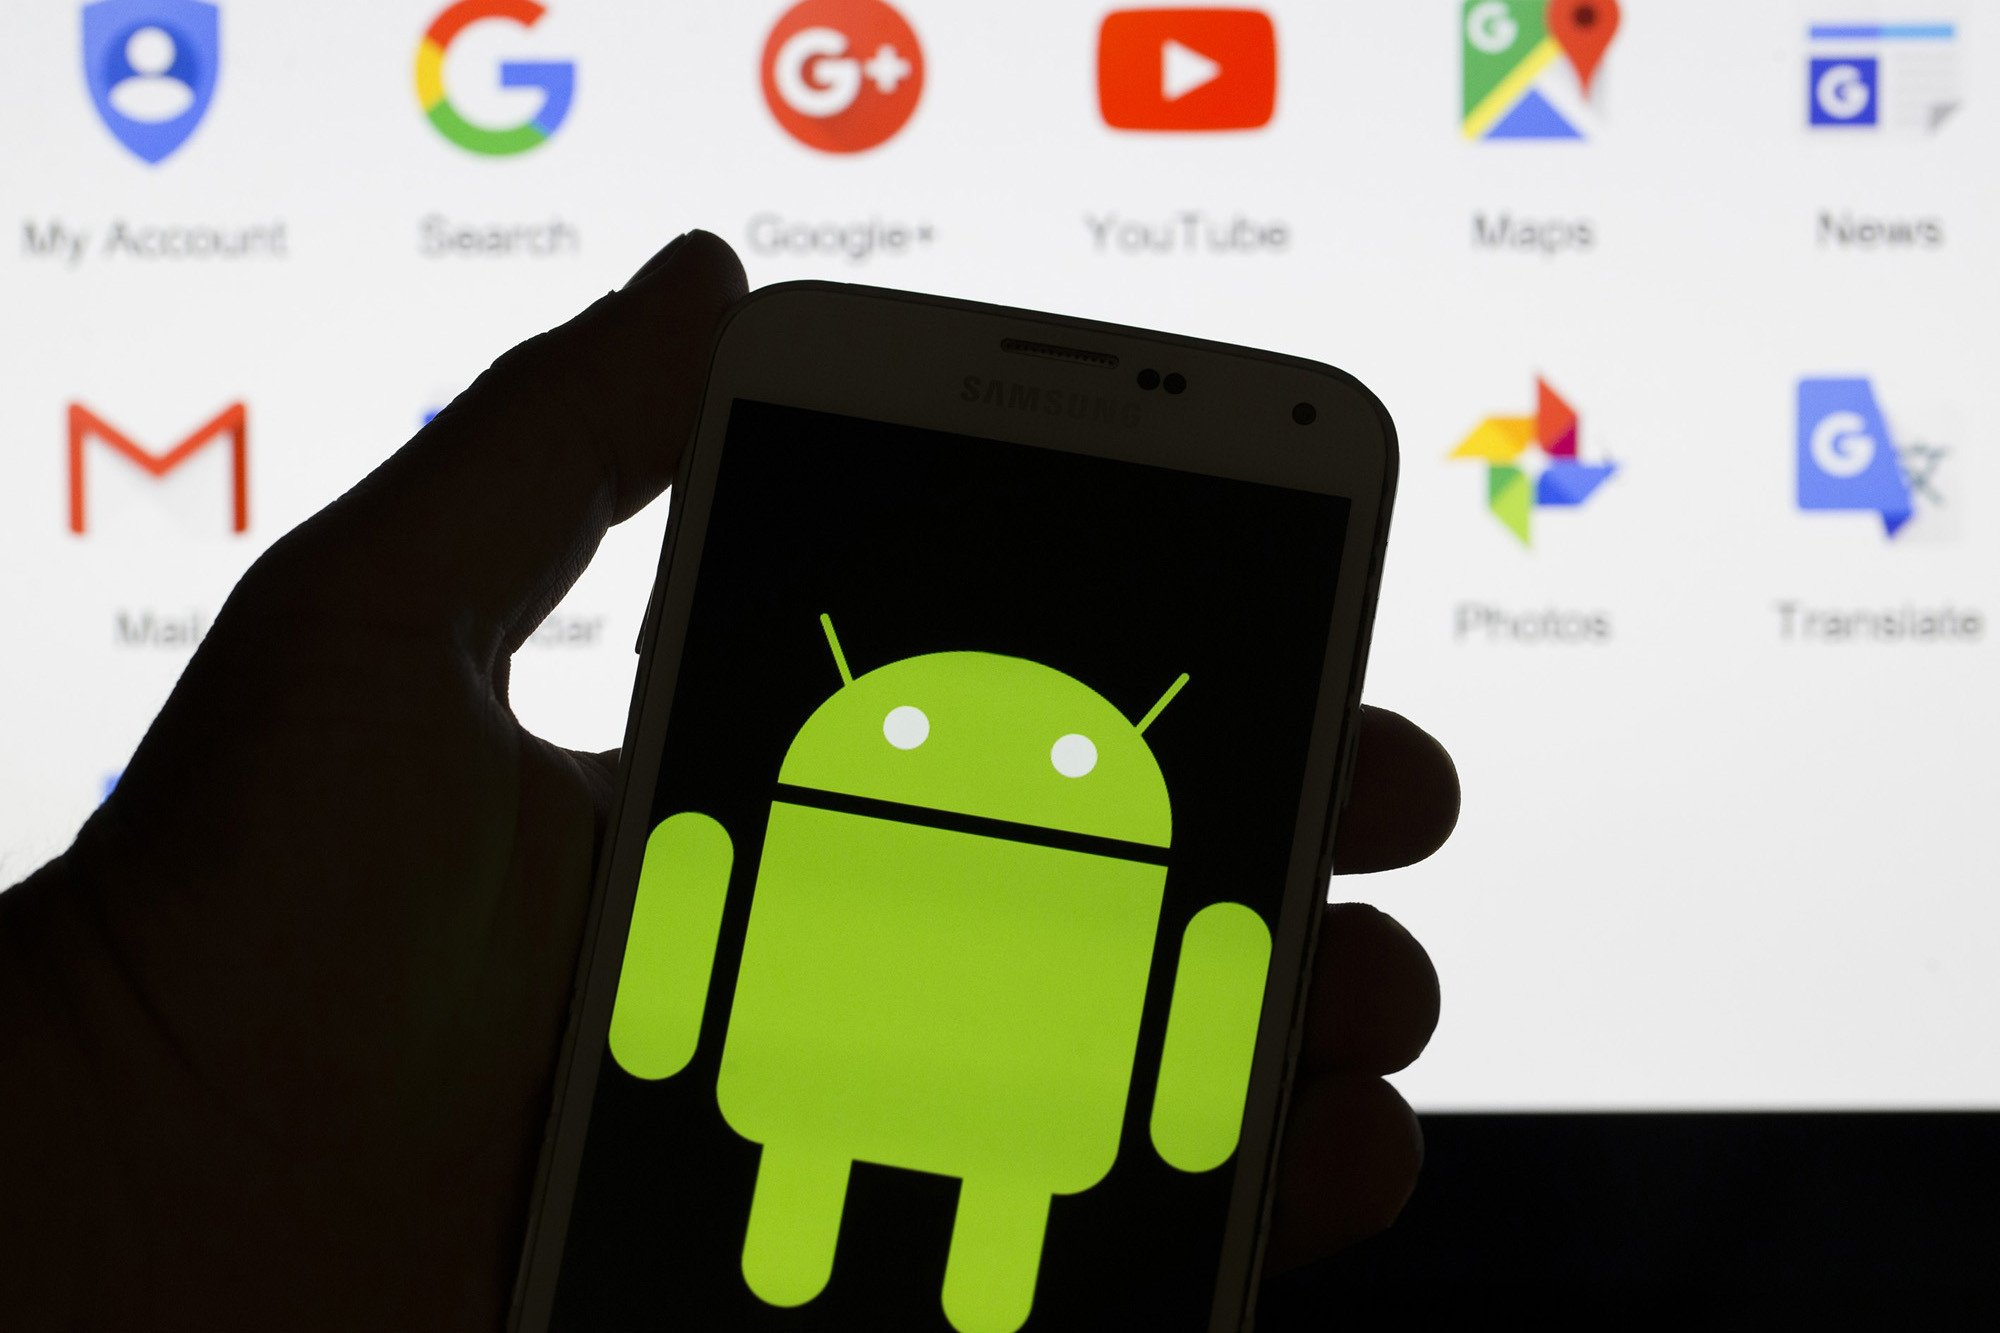 Behind Google's not-so-secret quest to reinvent its mobile OS